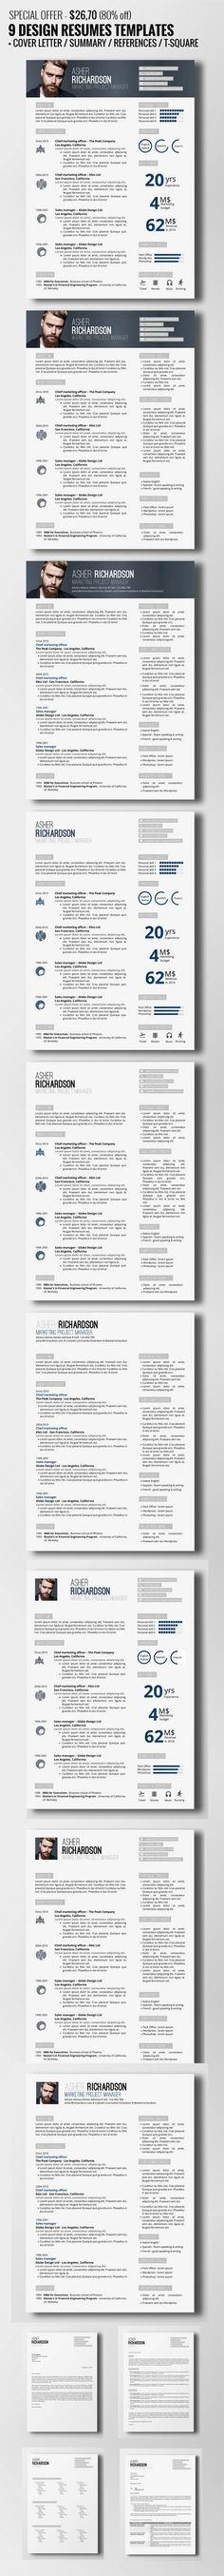 435 best Resume images on Pinterest Resume design, Design resume - portfolio manager resume sample